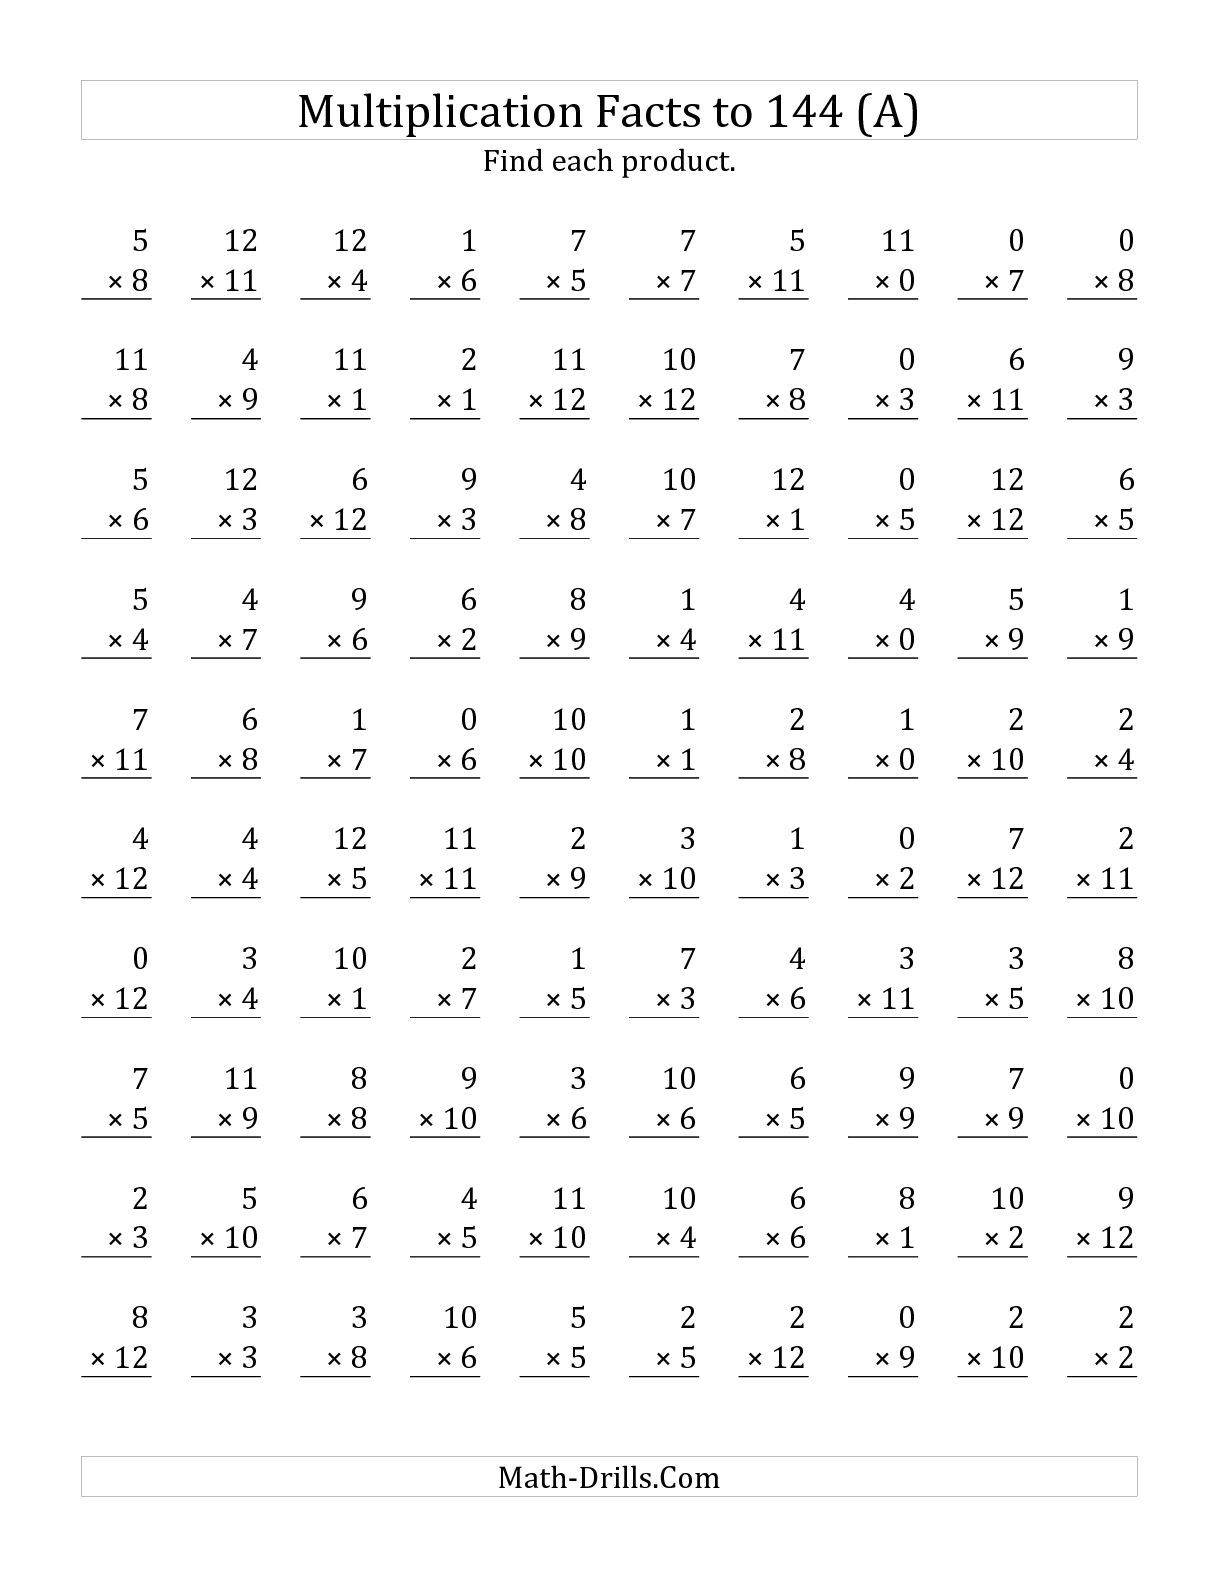 The Multiplication Facts To 144 Including Zeros A Math